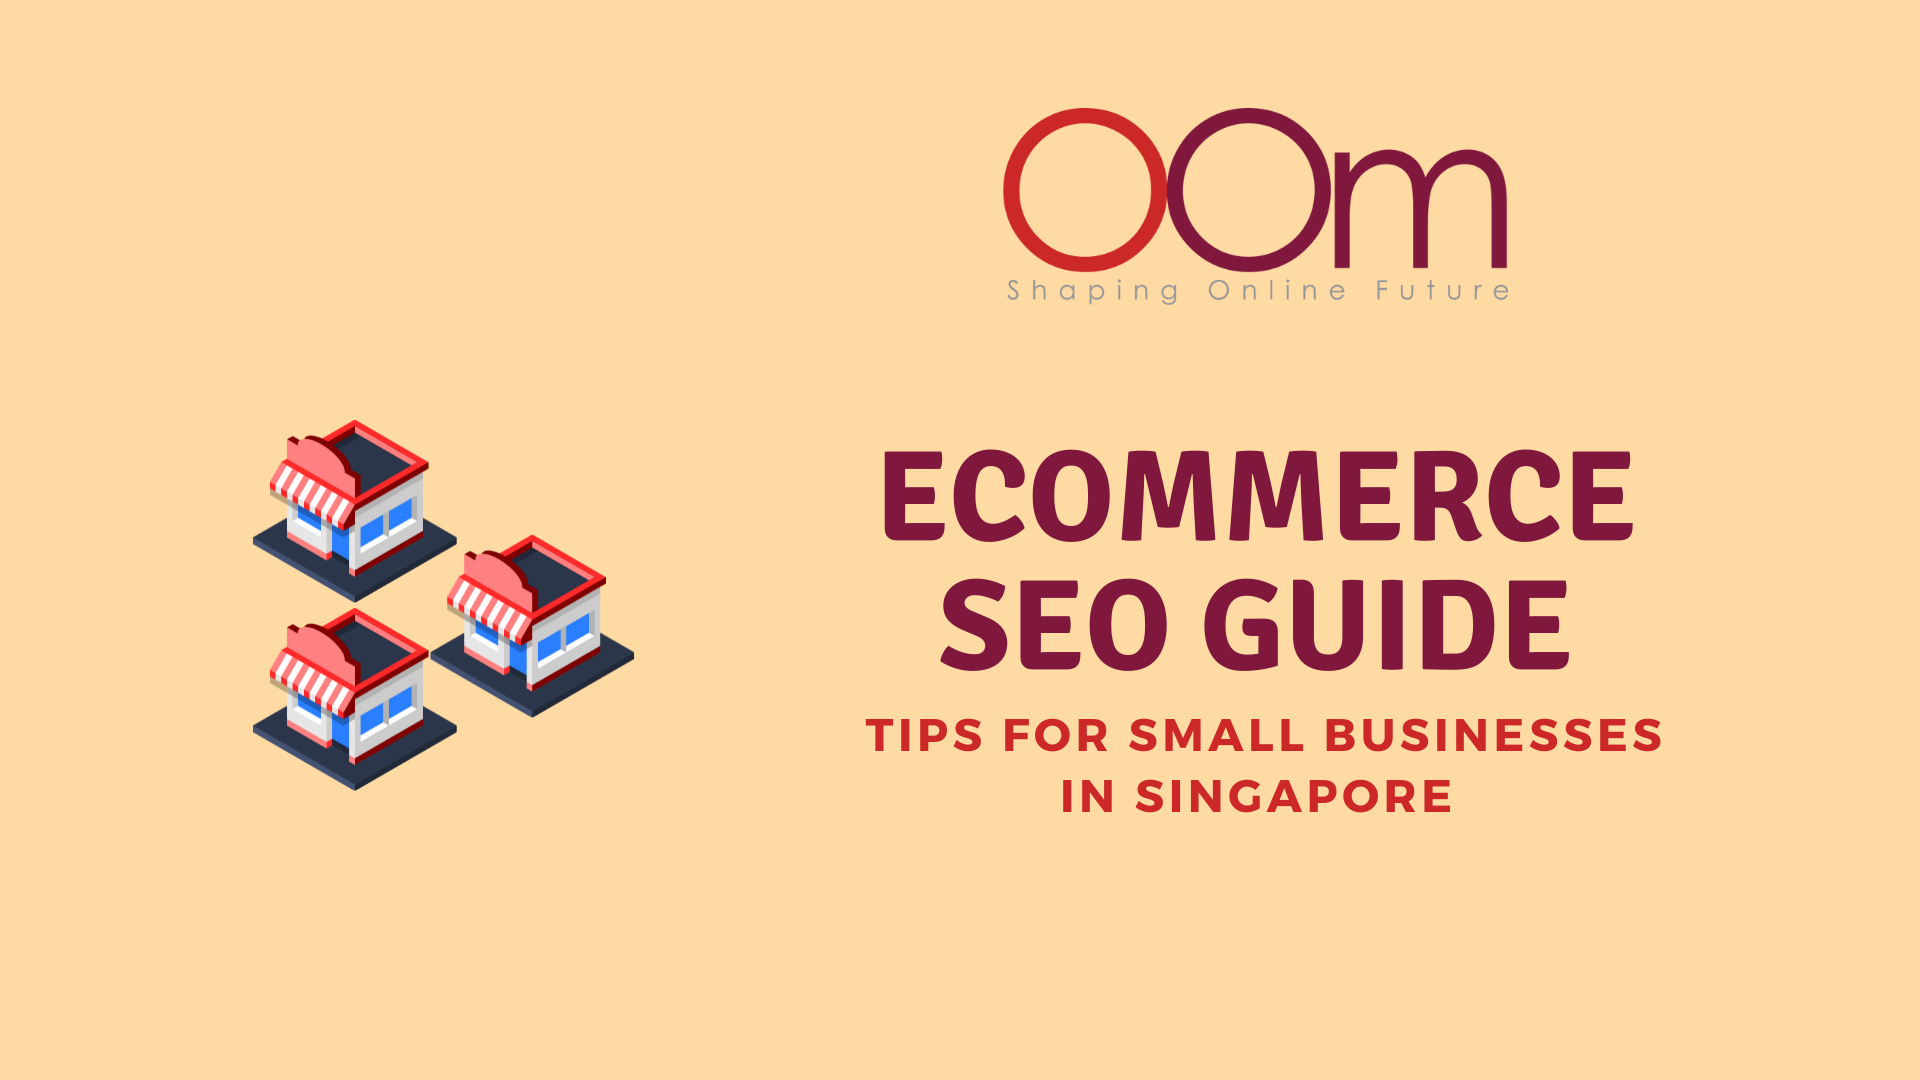 Ecommerce SEO Guide Tips For Small Businesses In Singapore